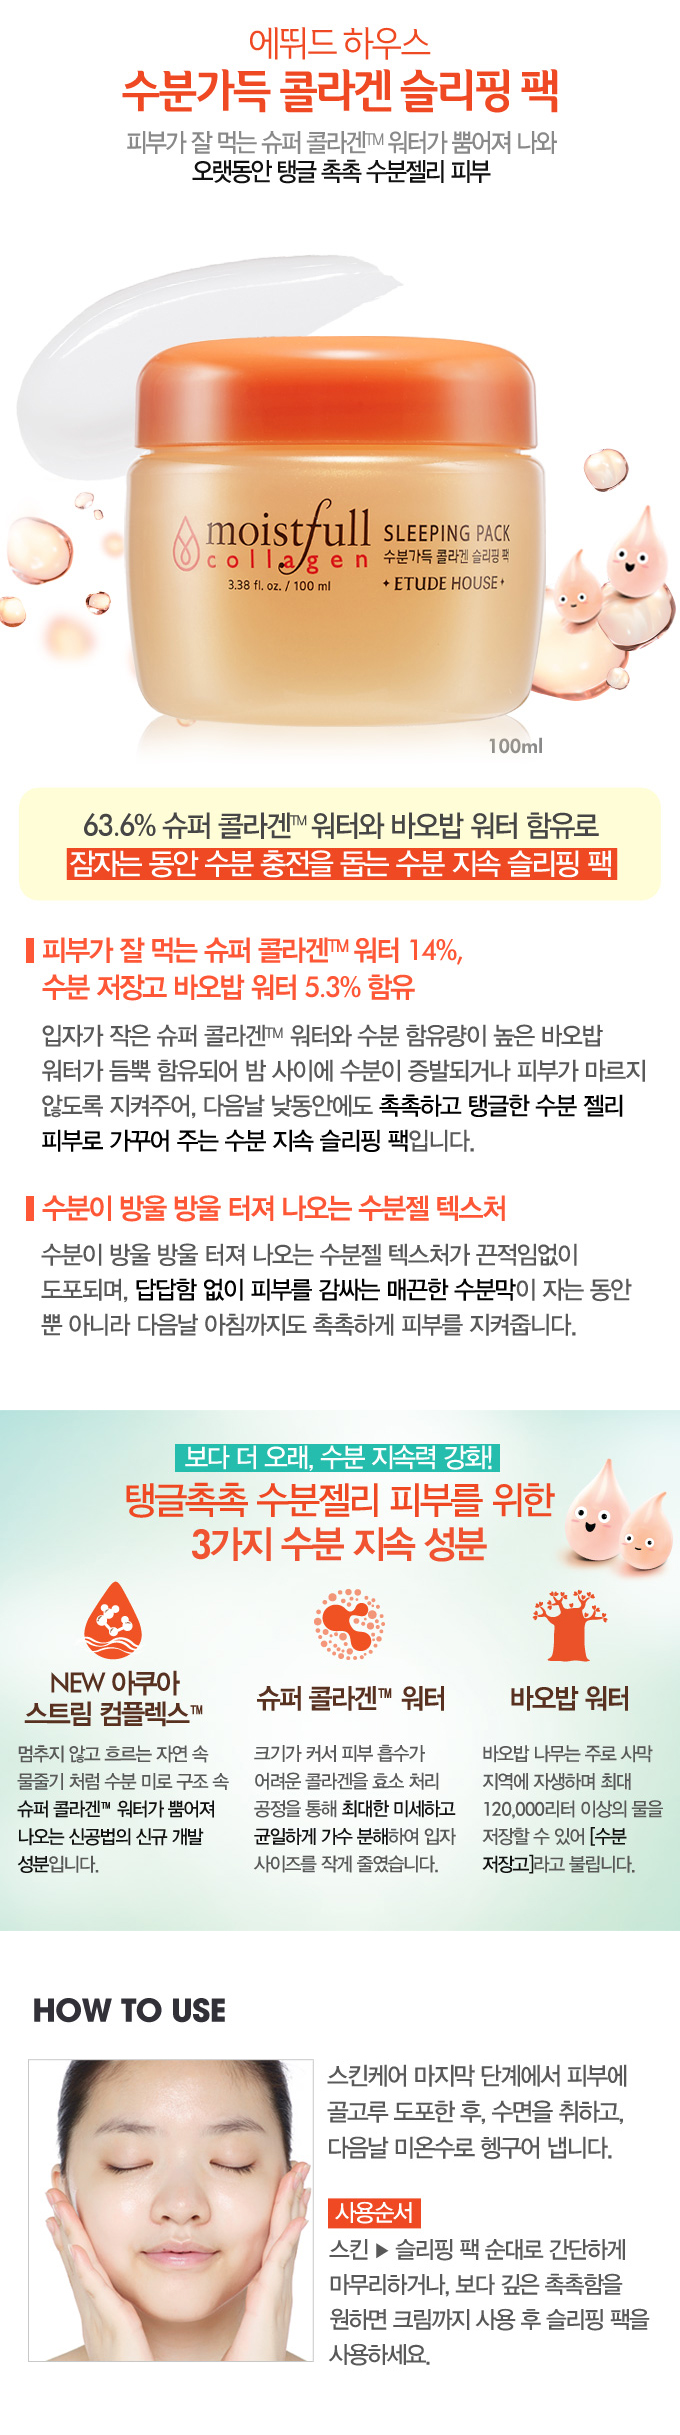 "Reviews. There are no reviews yet. Be the first to review ""[Etude House] Moistfull Collagen Sleeping Pack ..."